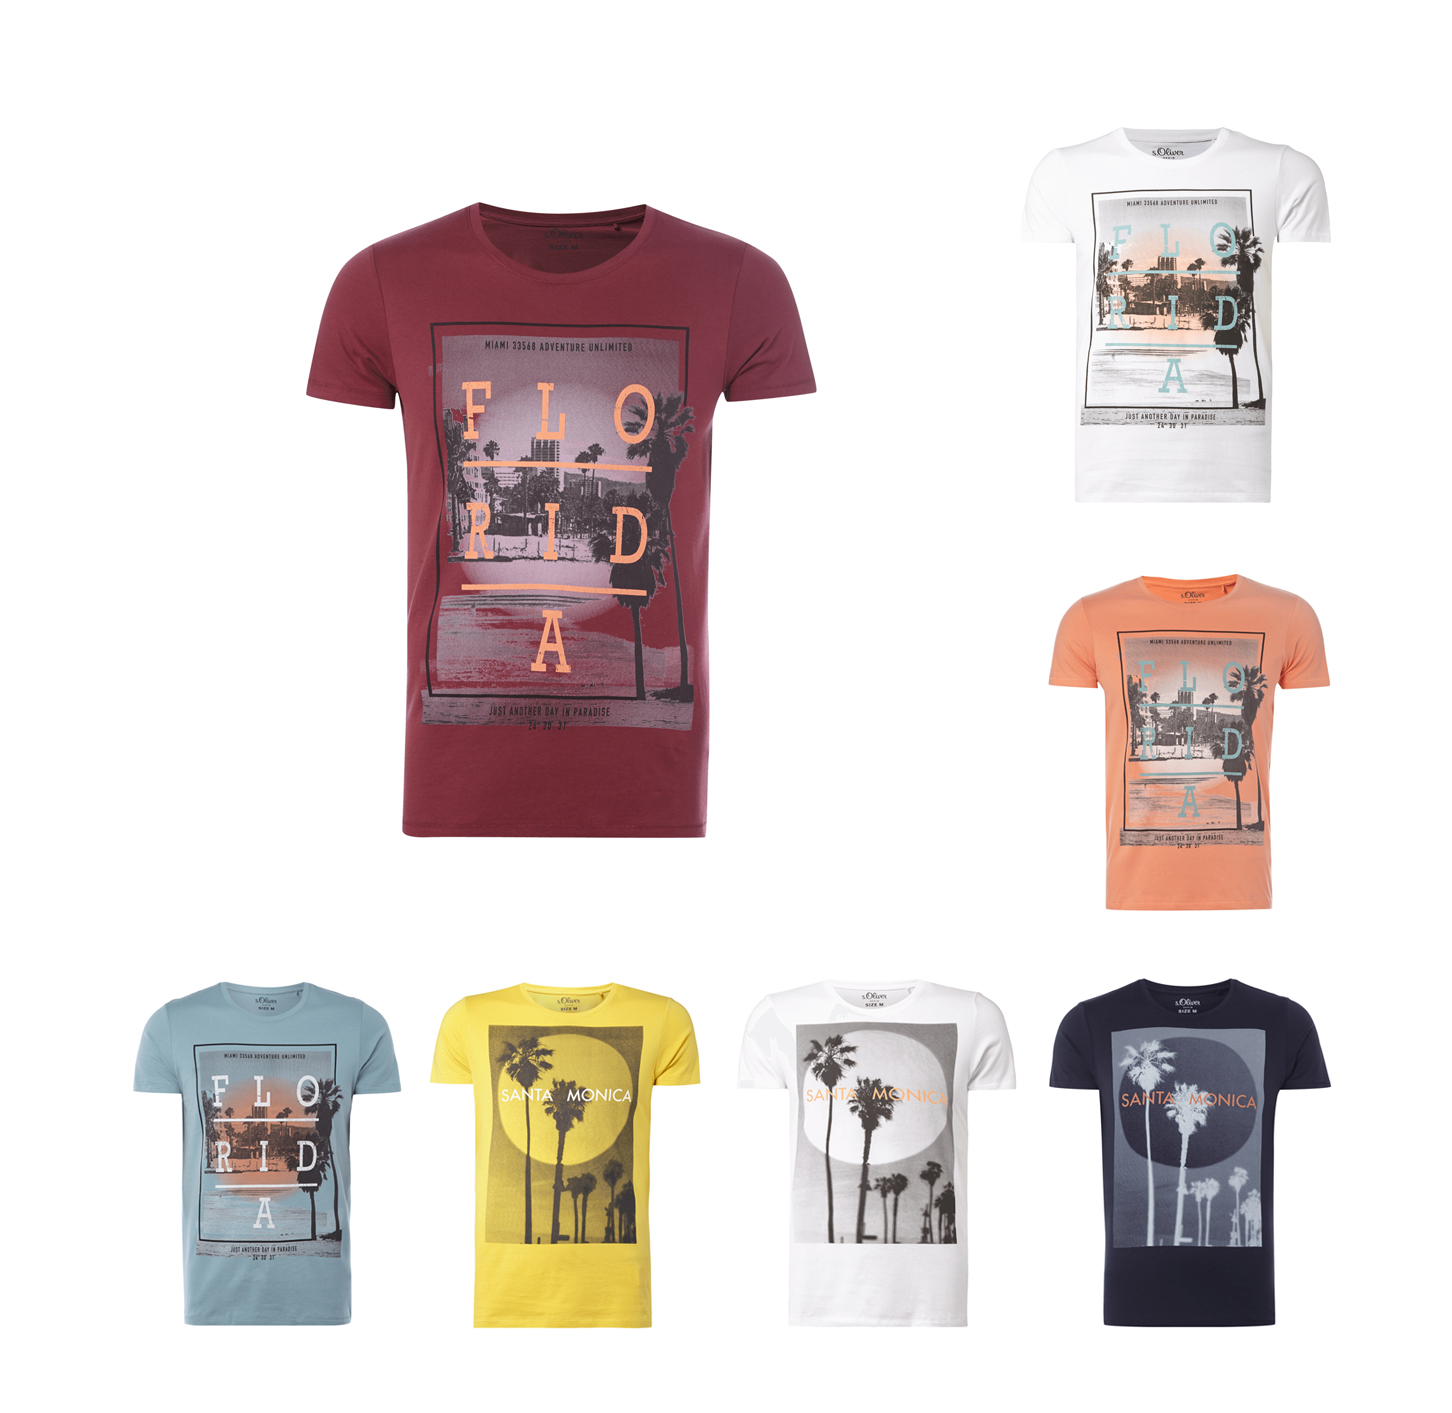 oliver t shirt mit foto print und message herren t shirt neu. Black Bedroom Furniture Sets. Home Design Ideas